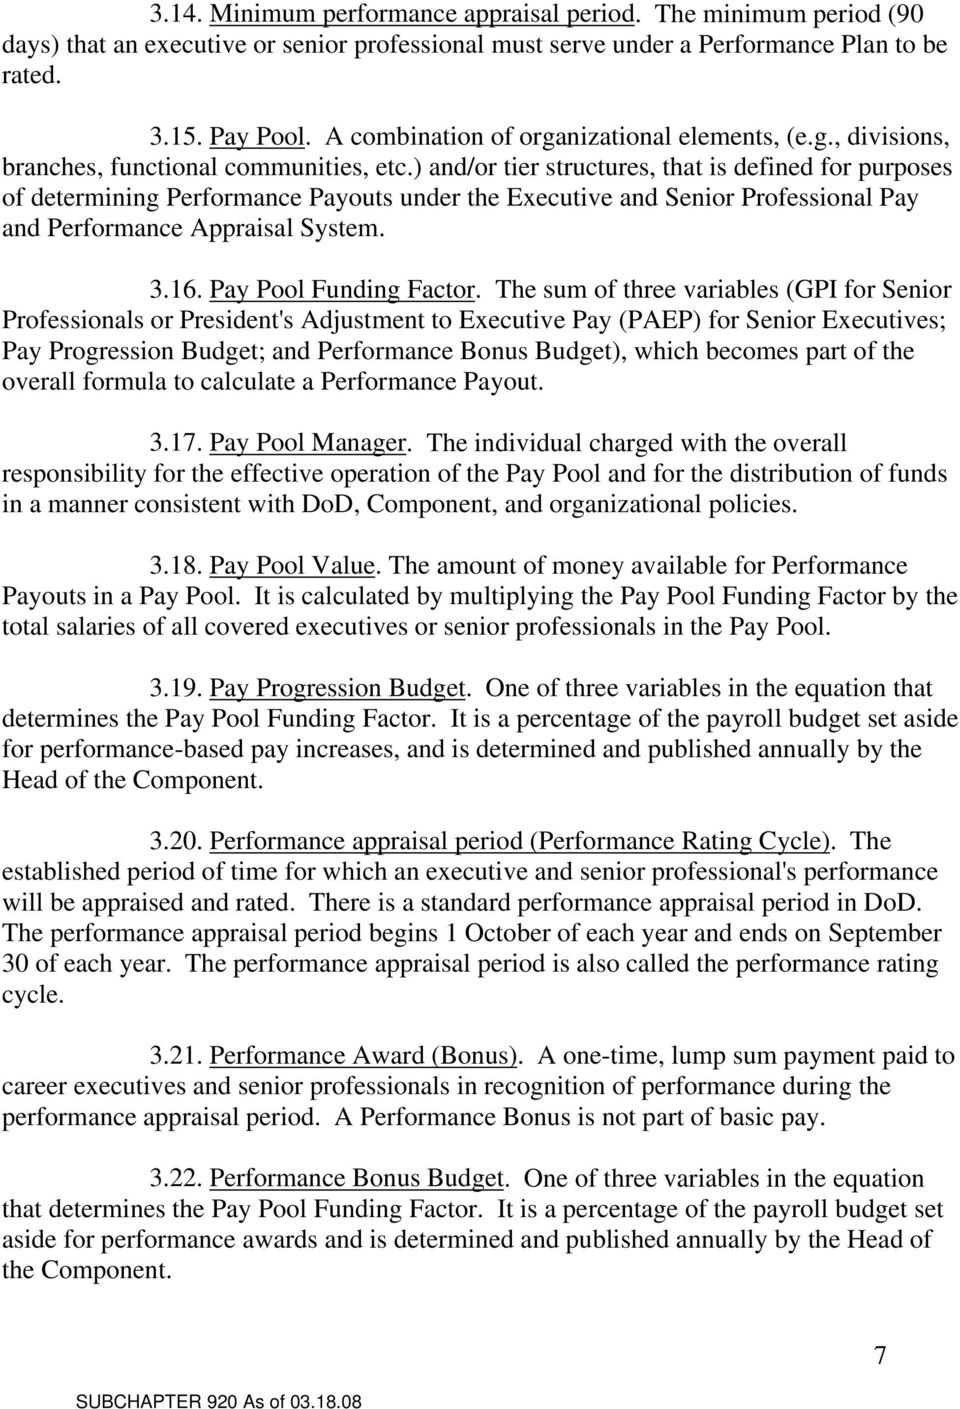 ) and/or tier structures, that is defined for purposes of determining Performance Payouts under the Executive and Senior Professional Pay and Performance Appraisal System. 3.16.